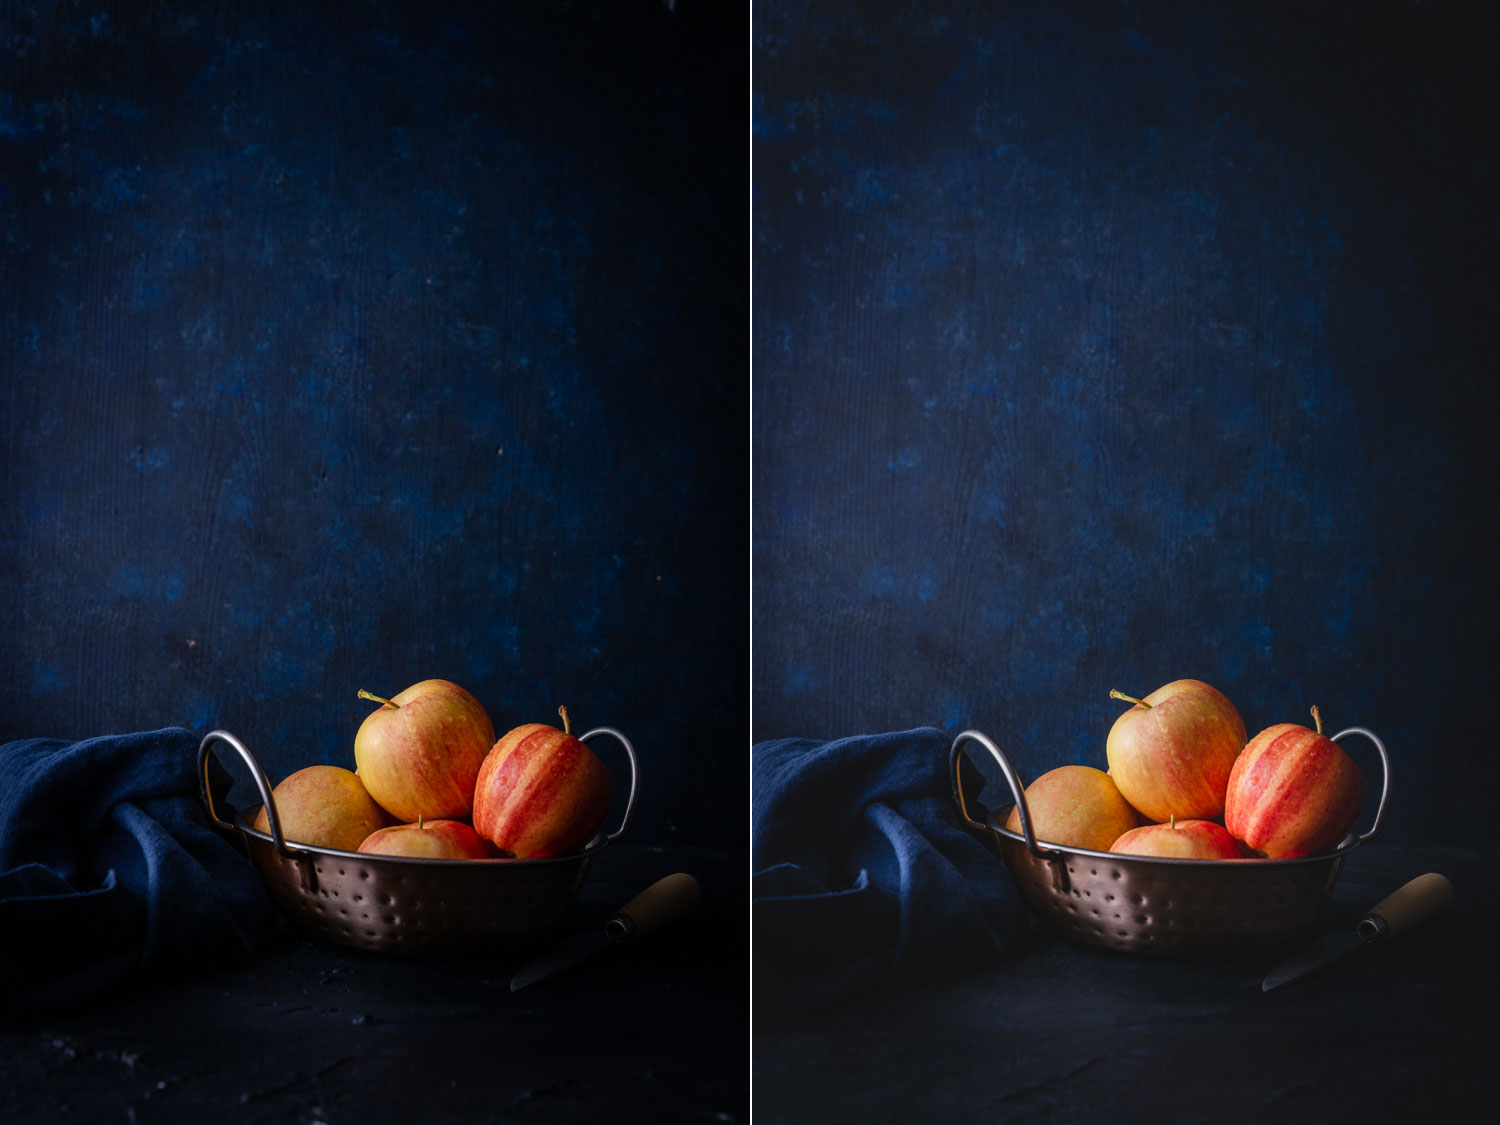 Photoshop Tools for Still Life Photography